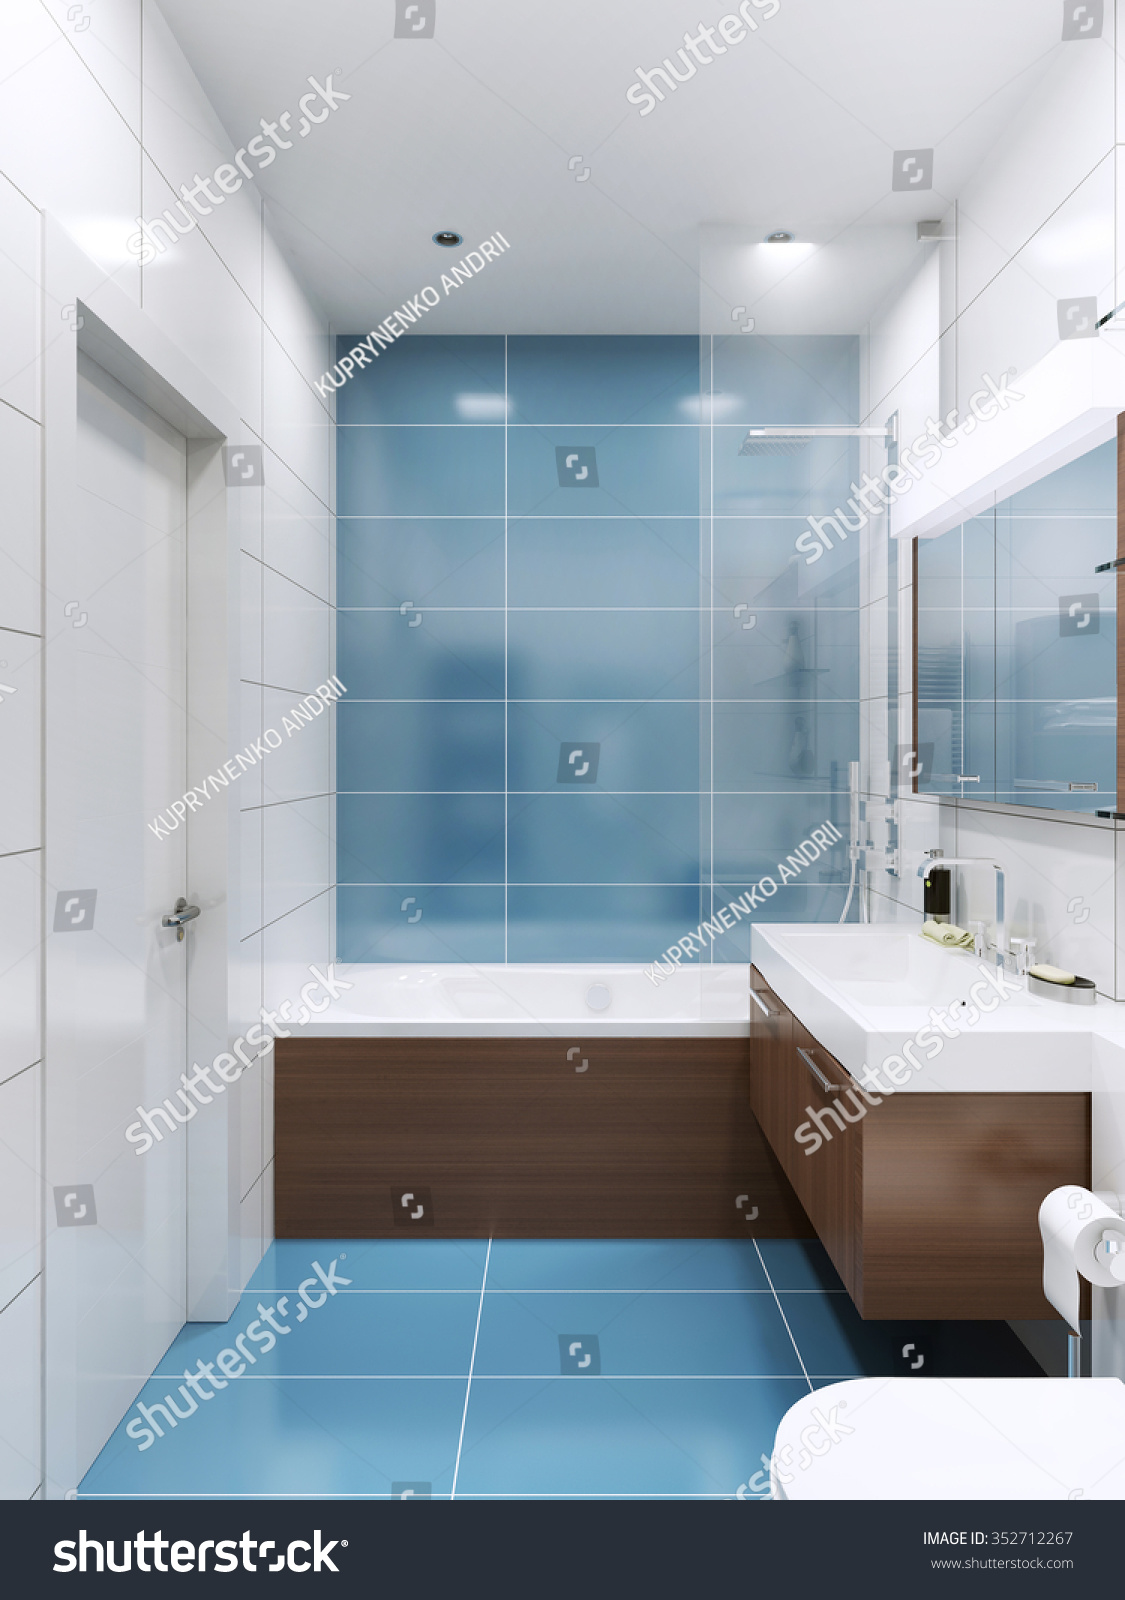 Blue White Bathroom Brown Wooden Futnirute Stock Illustration ...